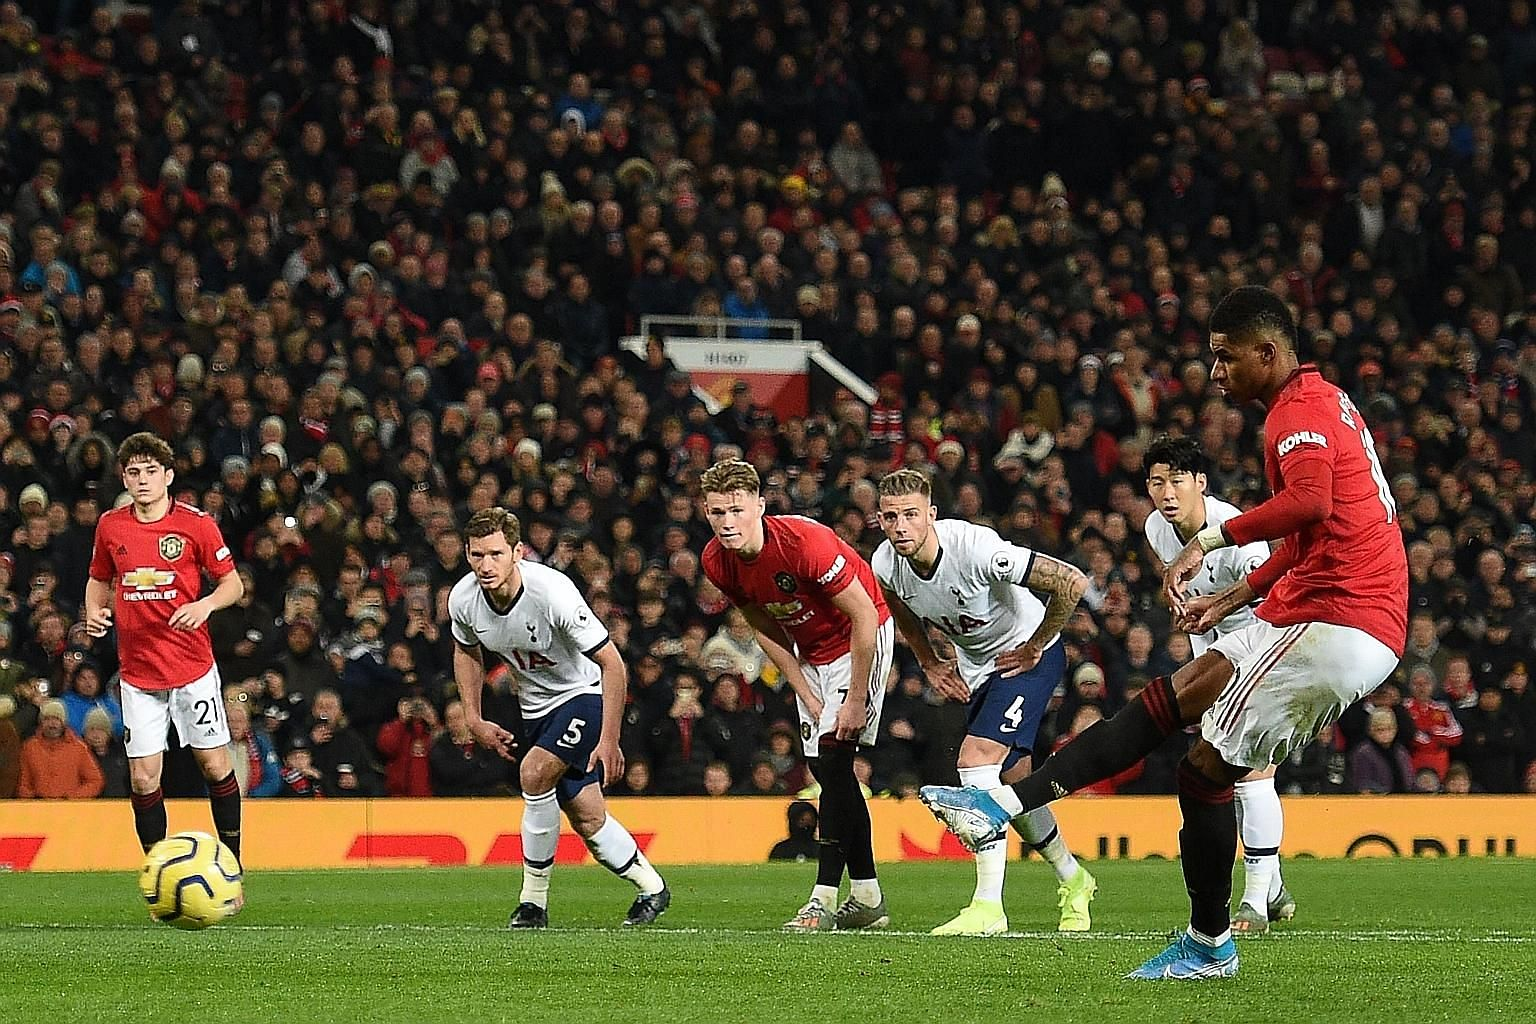 Manchester United striker Marcus Rashford scoring a penalty and his team's second goal, which turned out to be the winner, at Old Trafford on Wednesday night. The Red Devils defeated Tottenham 2-1 in the Premier League as Spurs' new manager Jose Mour